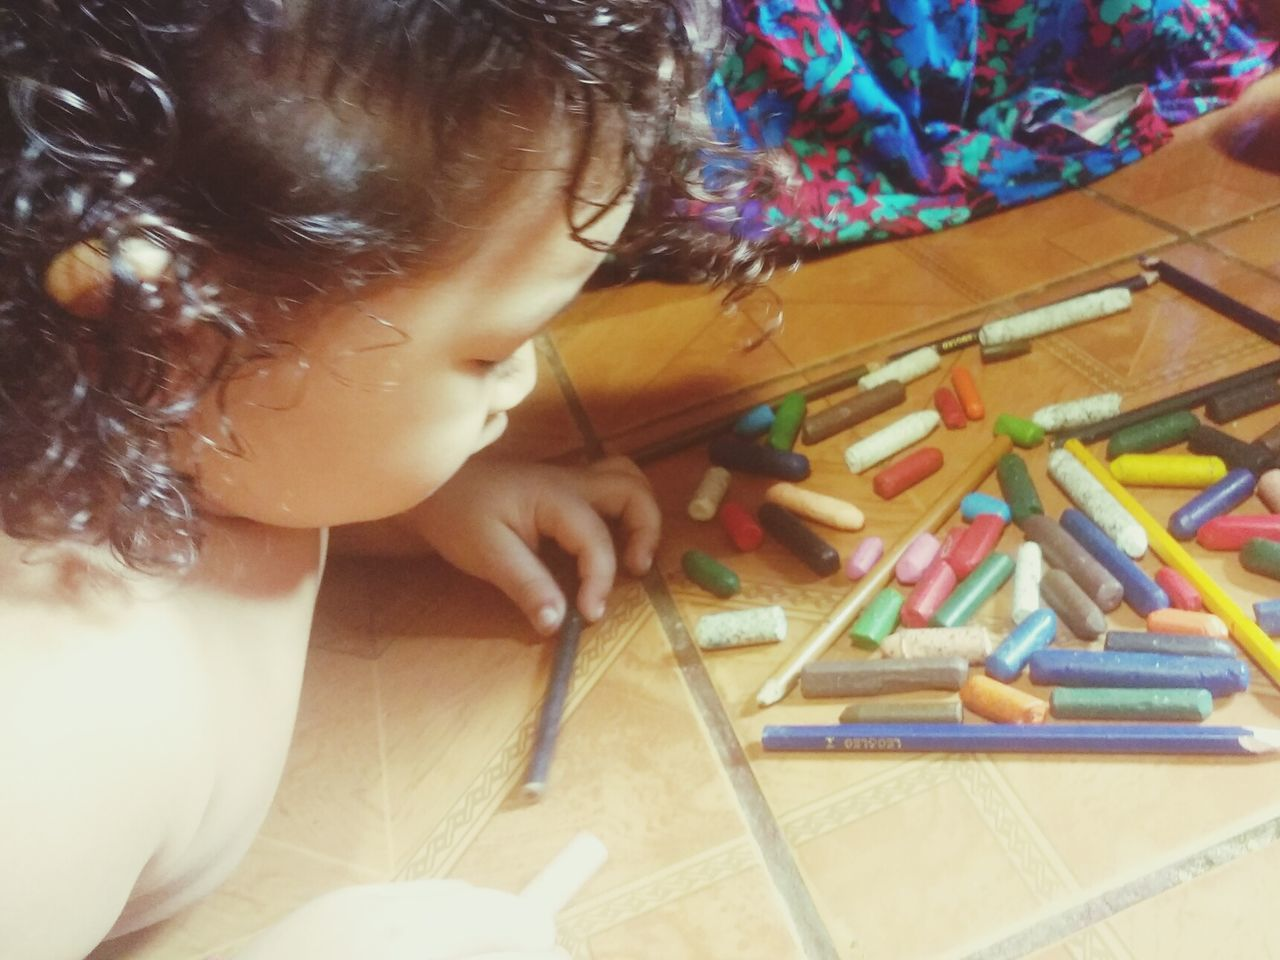 Kids child Multi Colored Skill  Creativity One Person Young Adult Artist Close-up People Studio Adults Only Human Hand Adult Indoors  One Young Woman Only Human Body Part Day